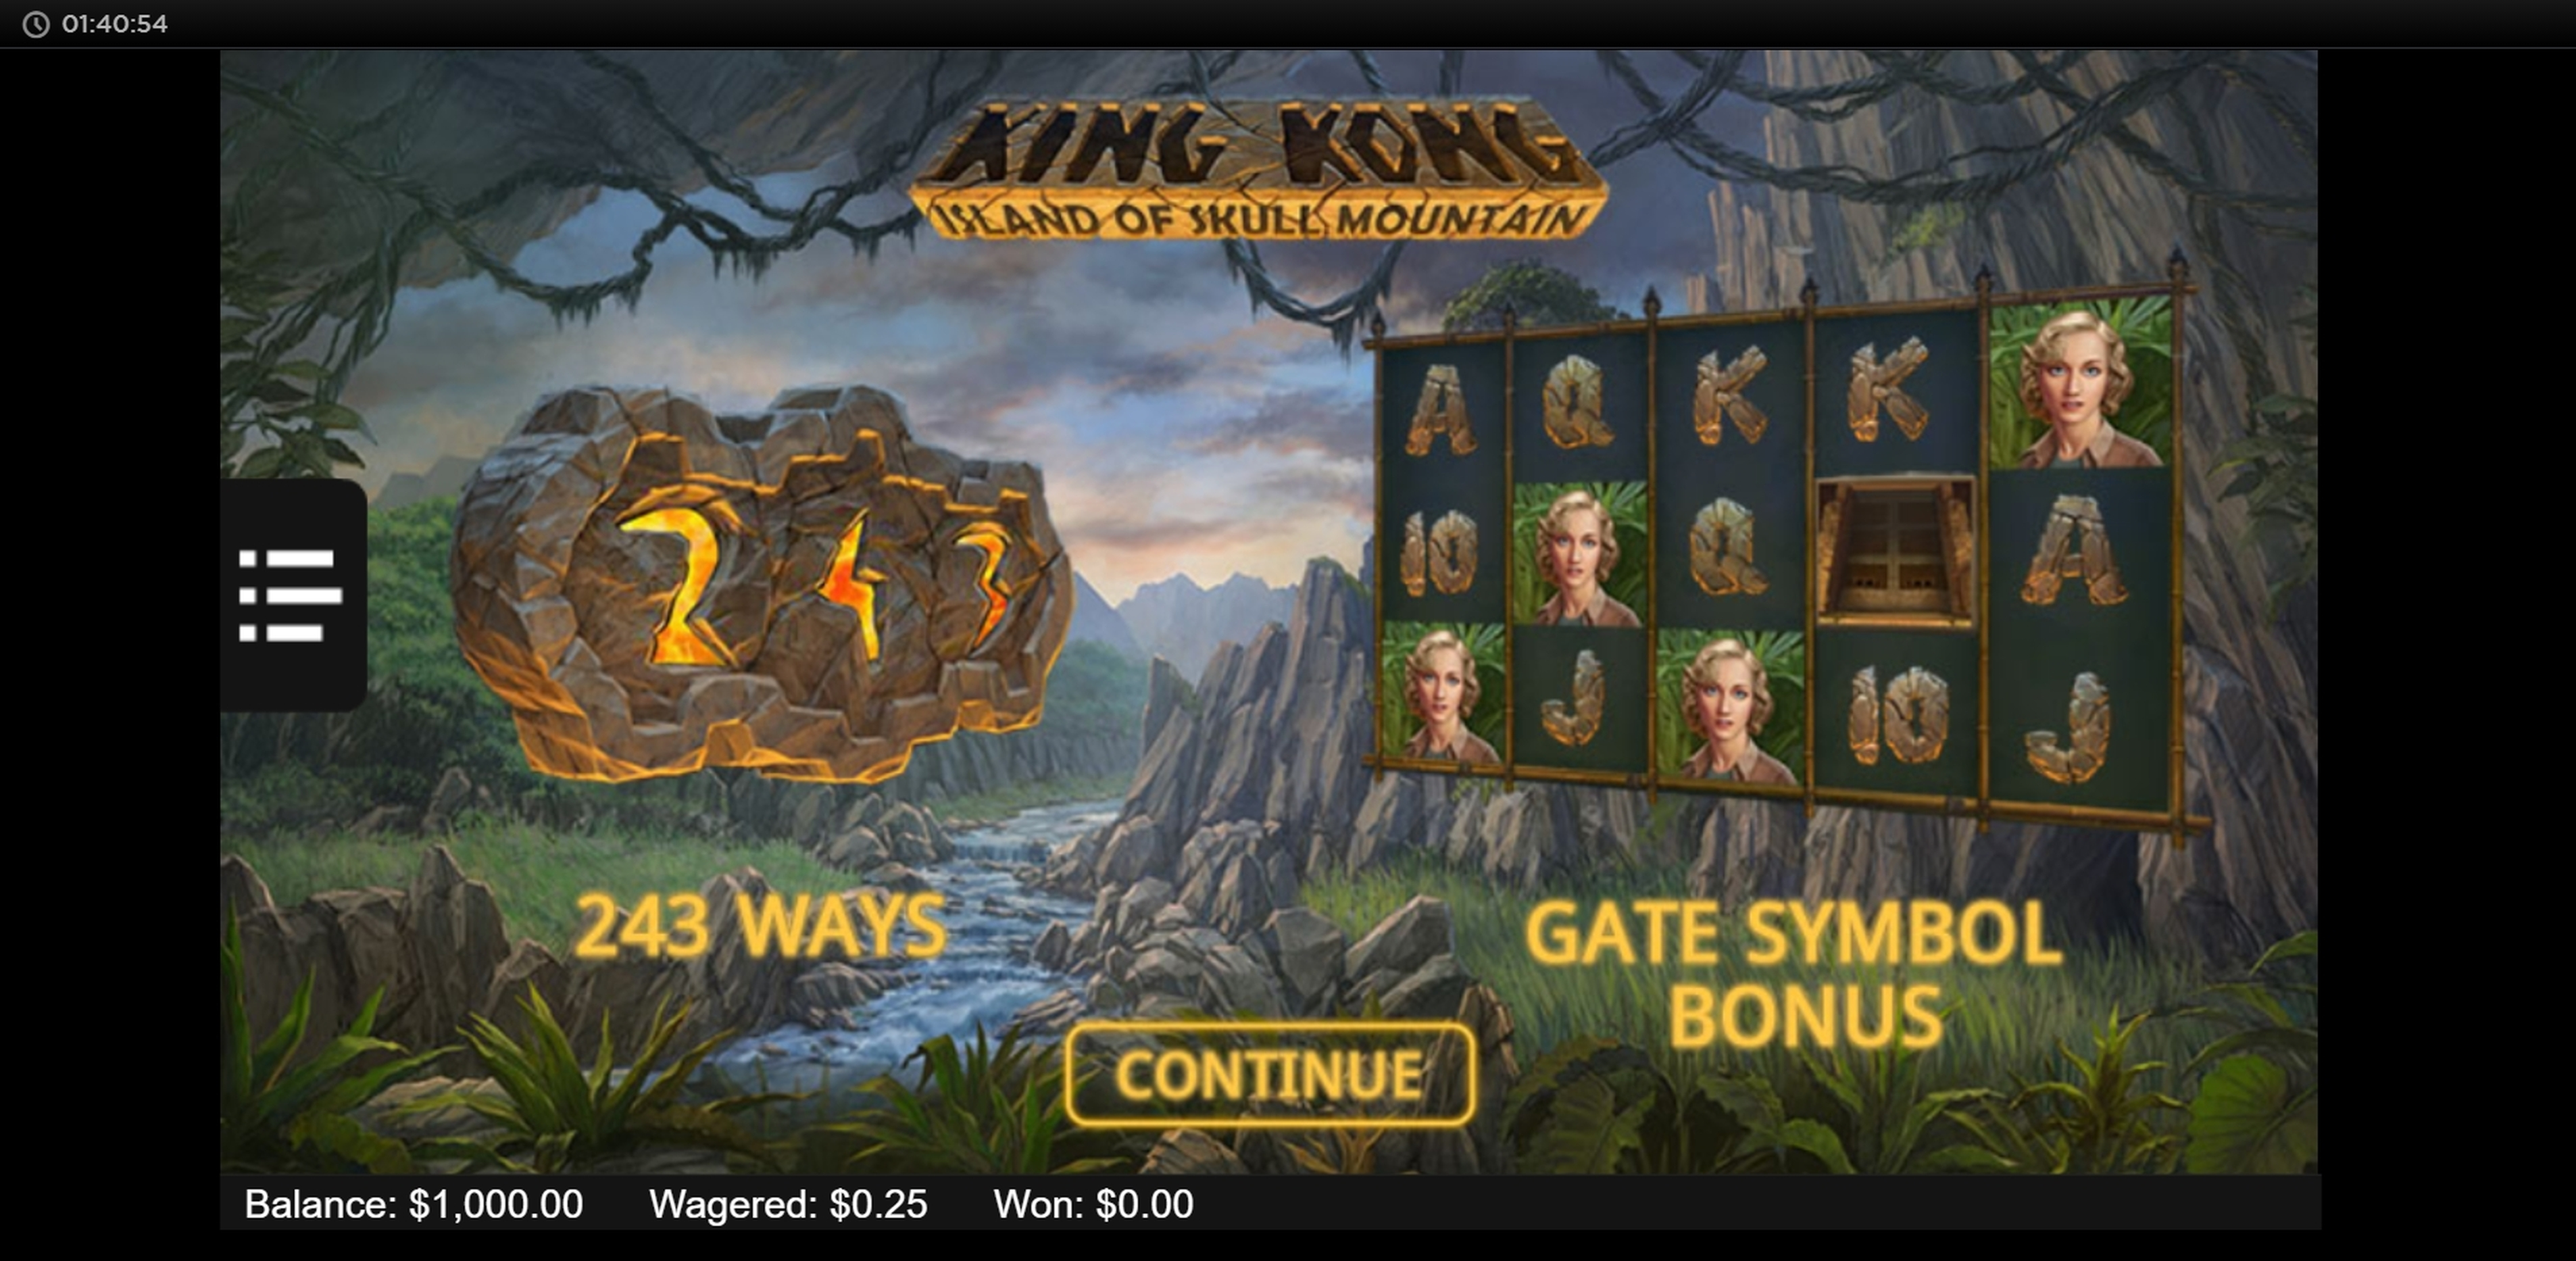 Play King Kong: Island of Skull Mountain Free Casino Slot Game by NYX Gaming Group